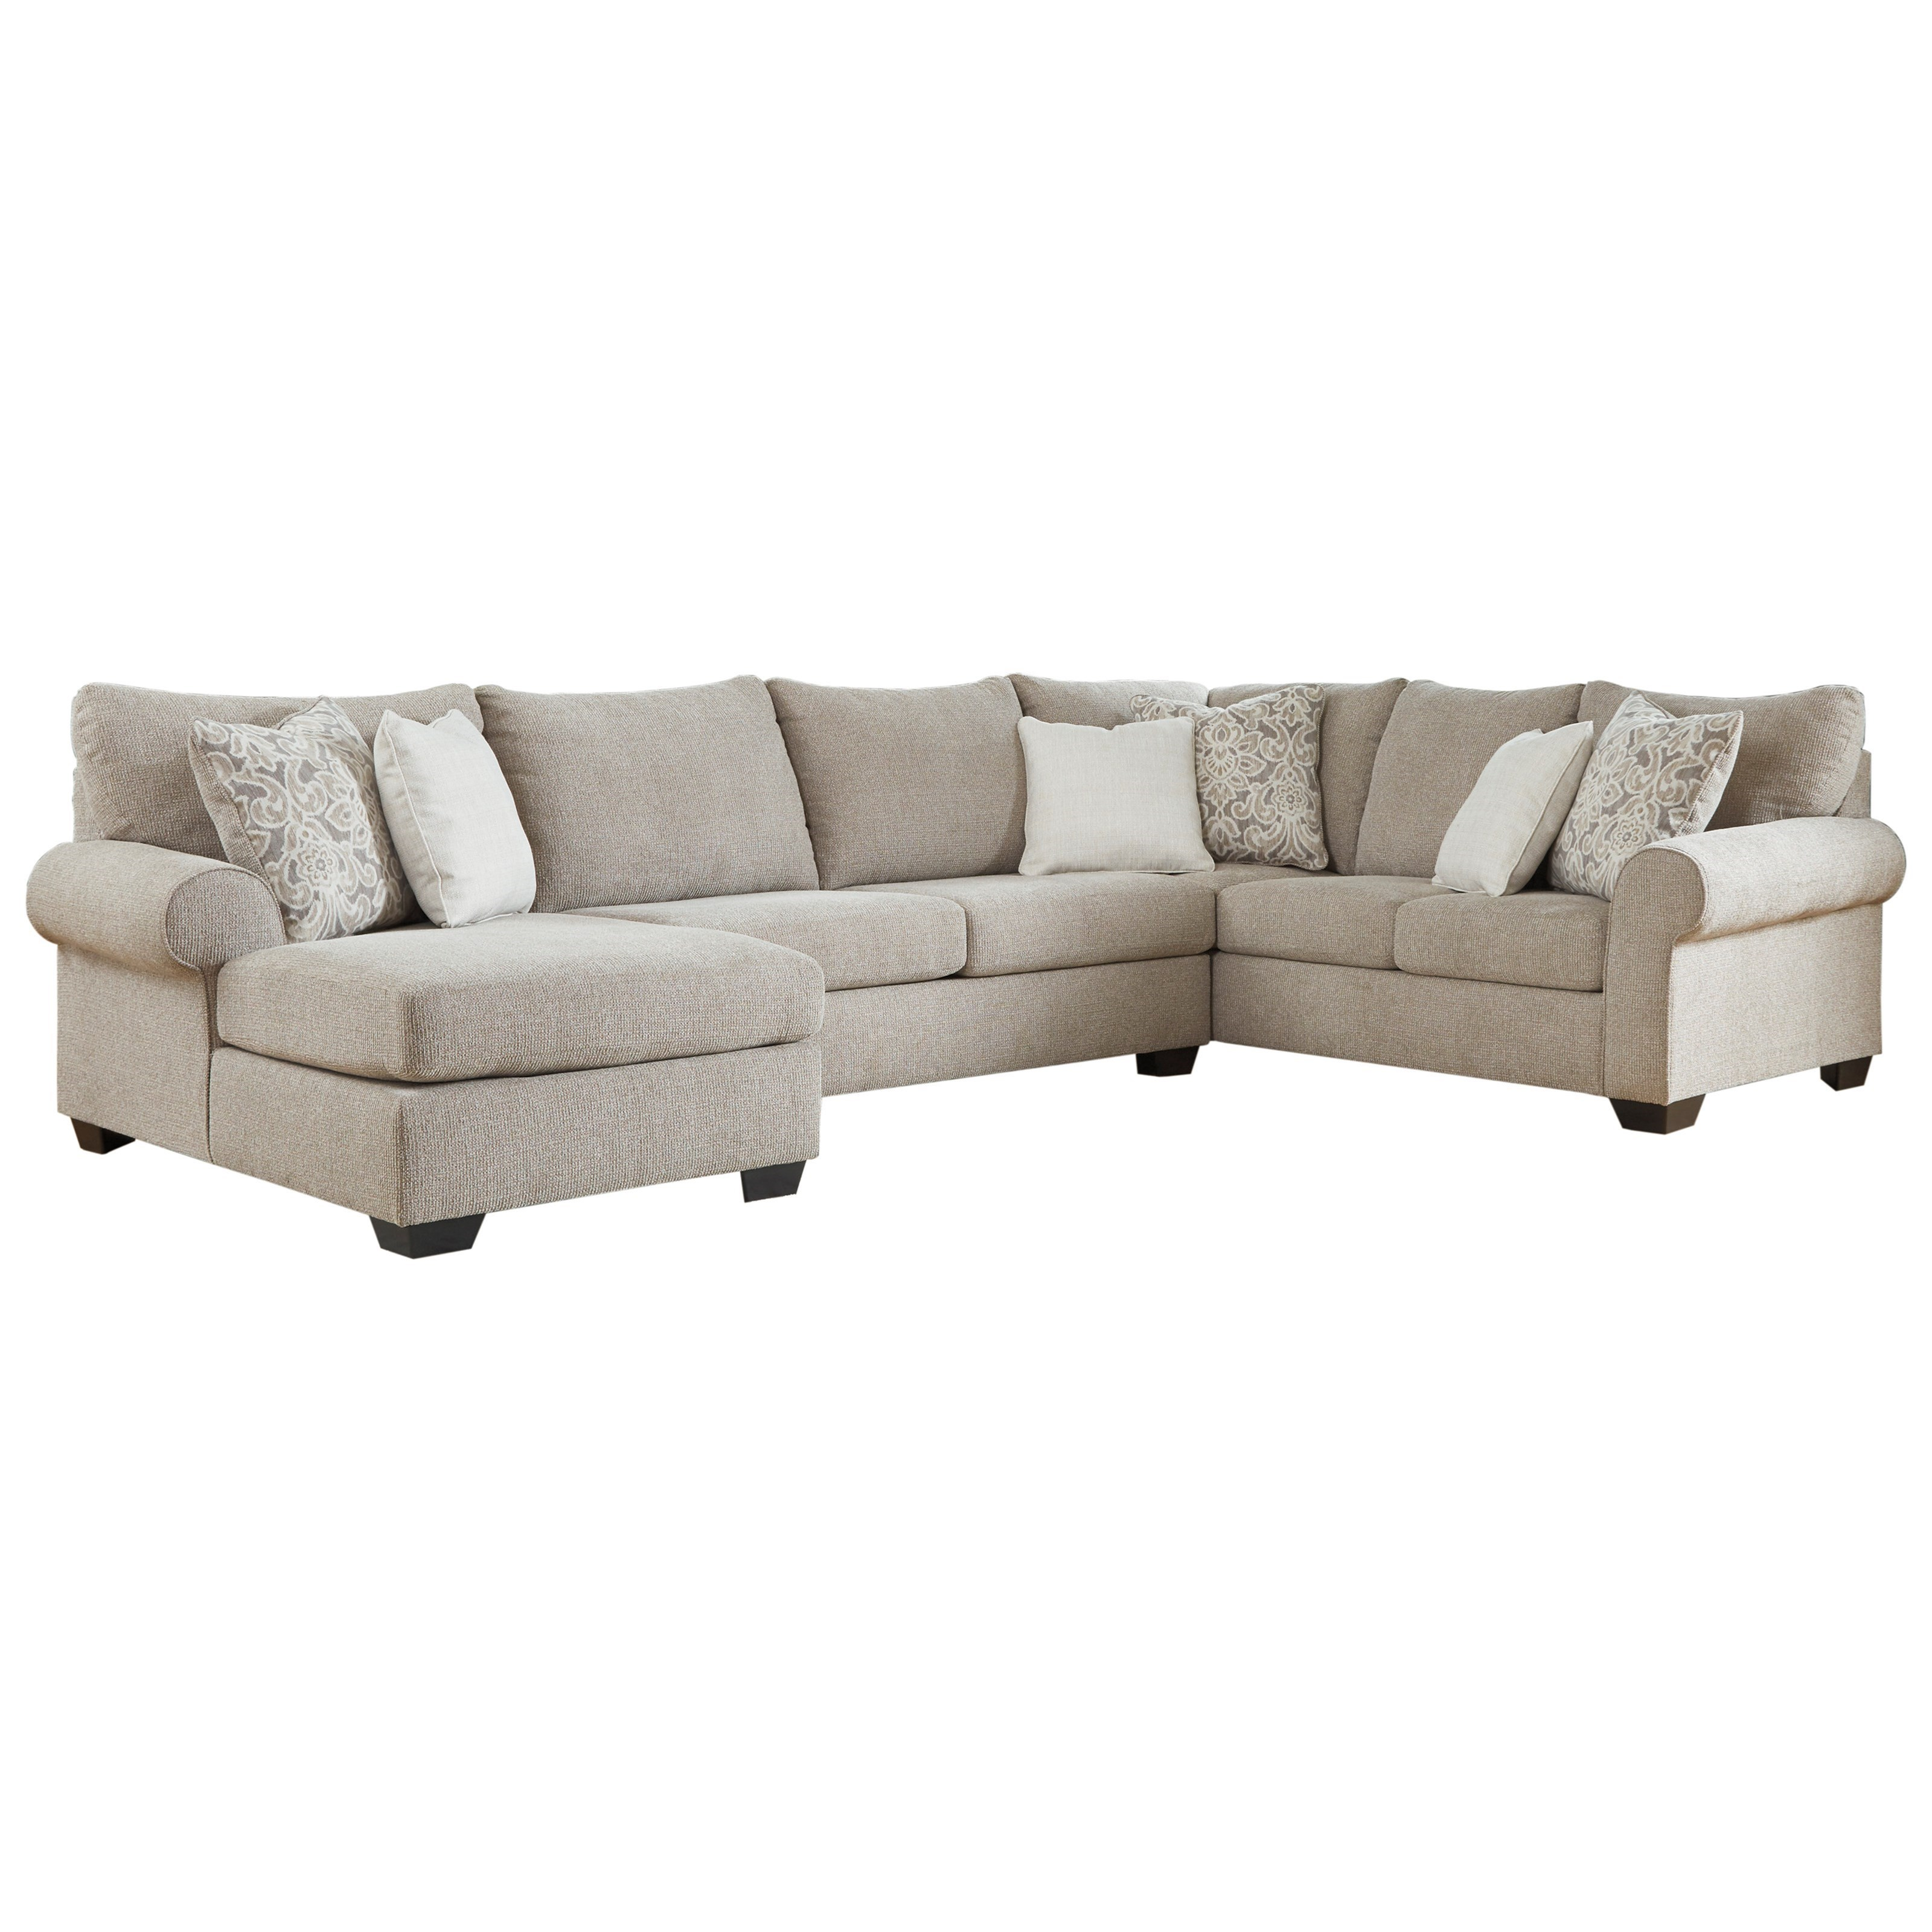 Baranello 3-Piece Sectional with Left Chaise by Benchcraft at Johnny Janosik